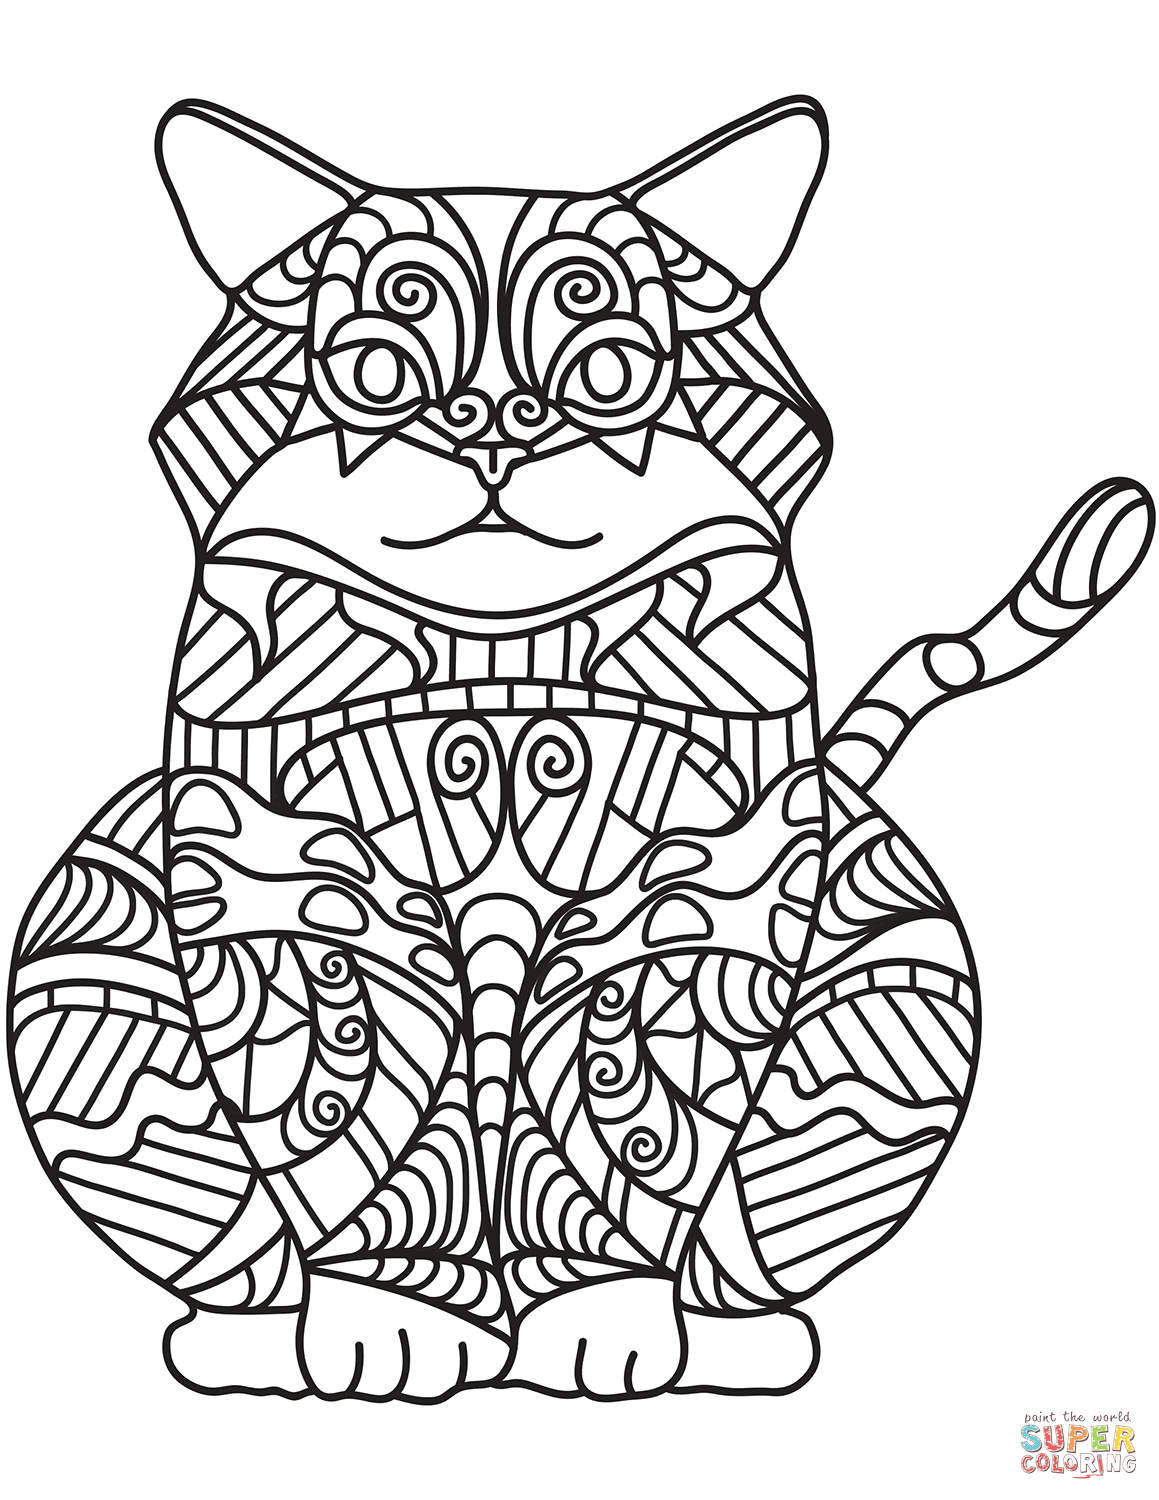 18 Easy Coloring Sheets for Seniors   Healthcare Channel Aged Care